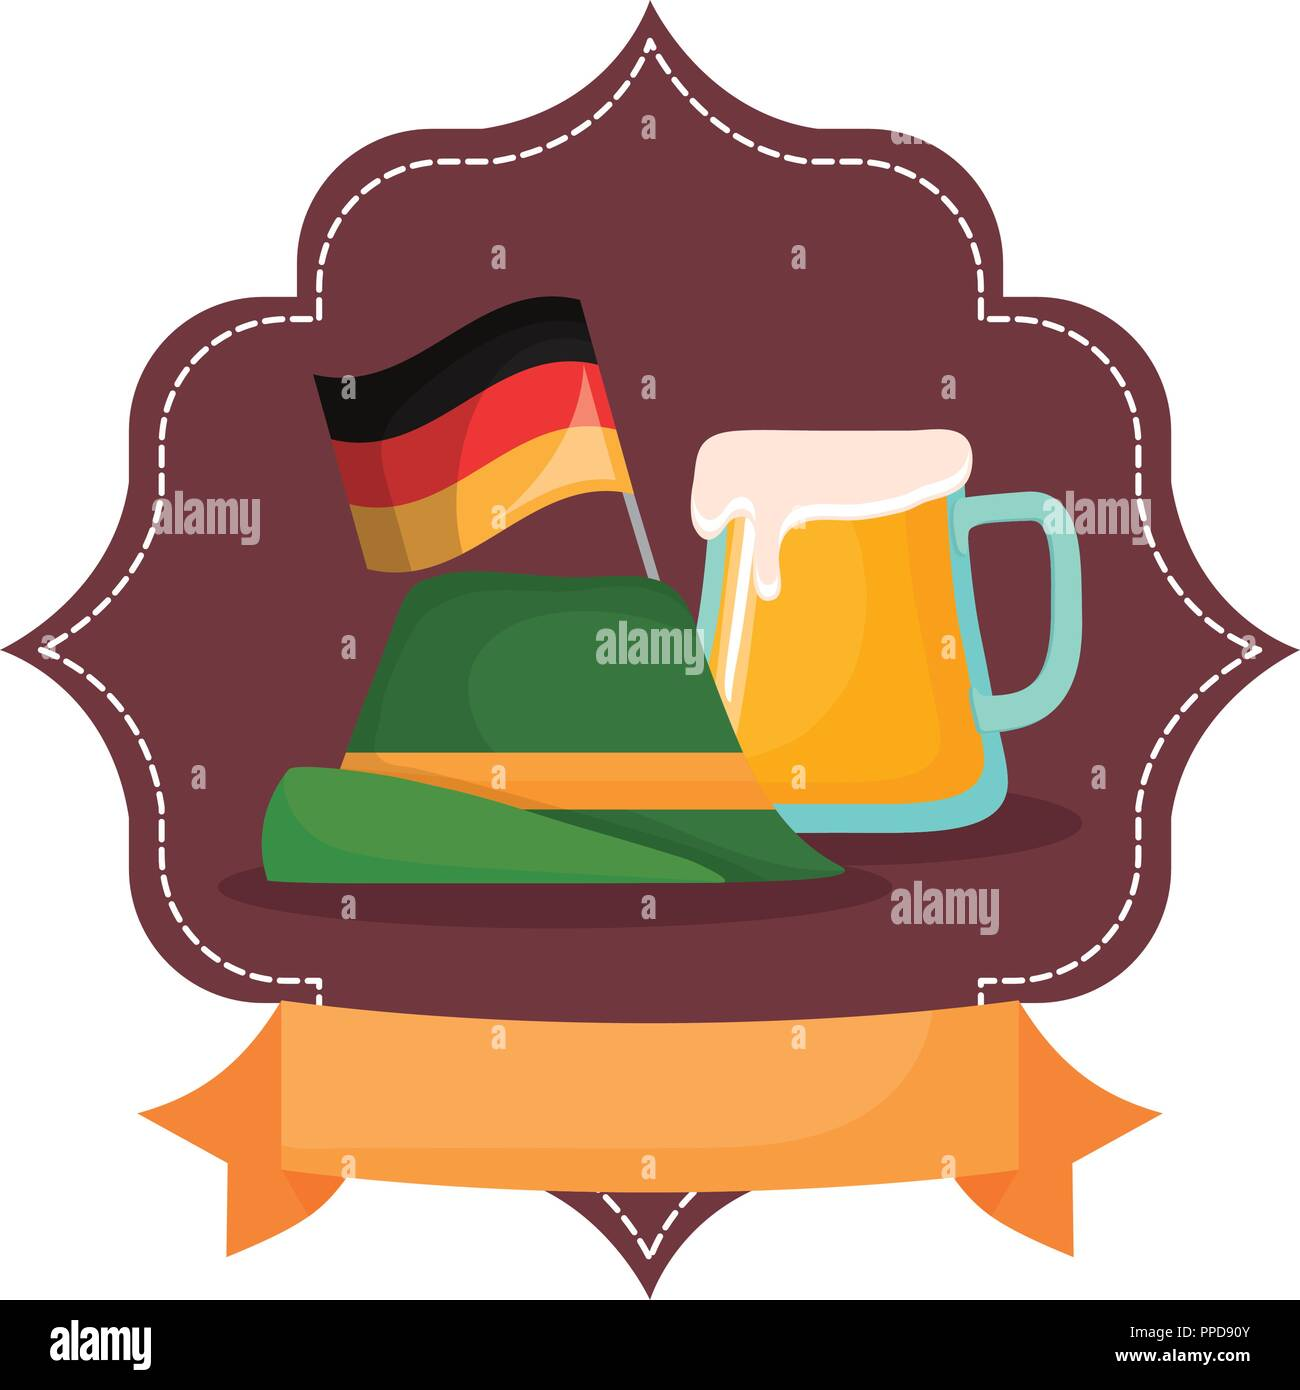 oktoberfest beer germany hat flag emblem banner vector illustration - Stock Image